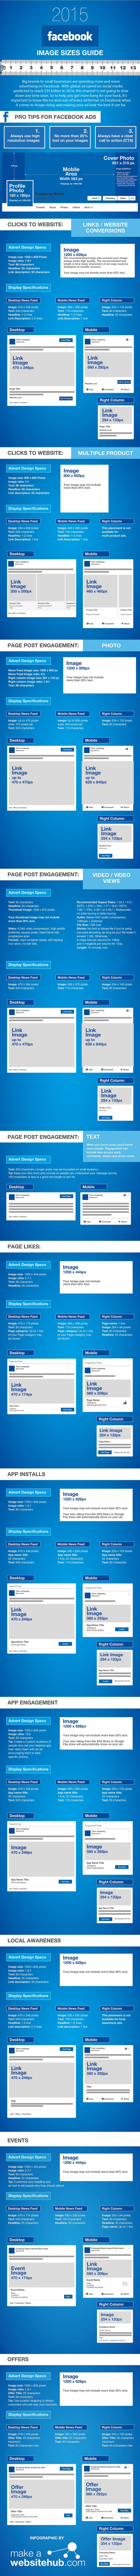 If you are looking for image sizes for other social media sites such as Twitter, Pinterest or YouTube then you can find this informationhere.